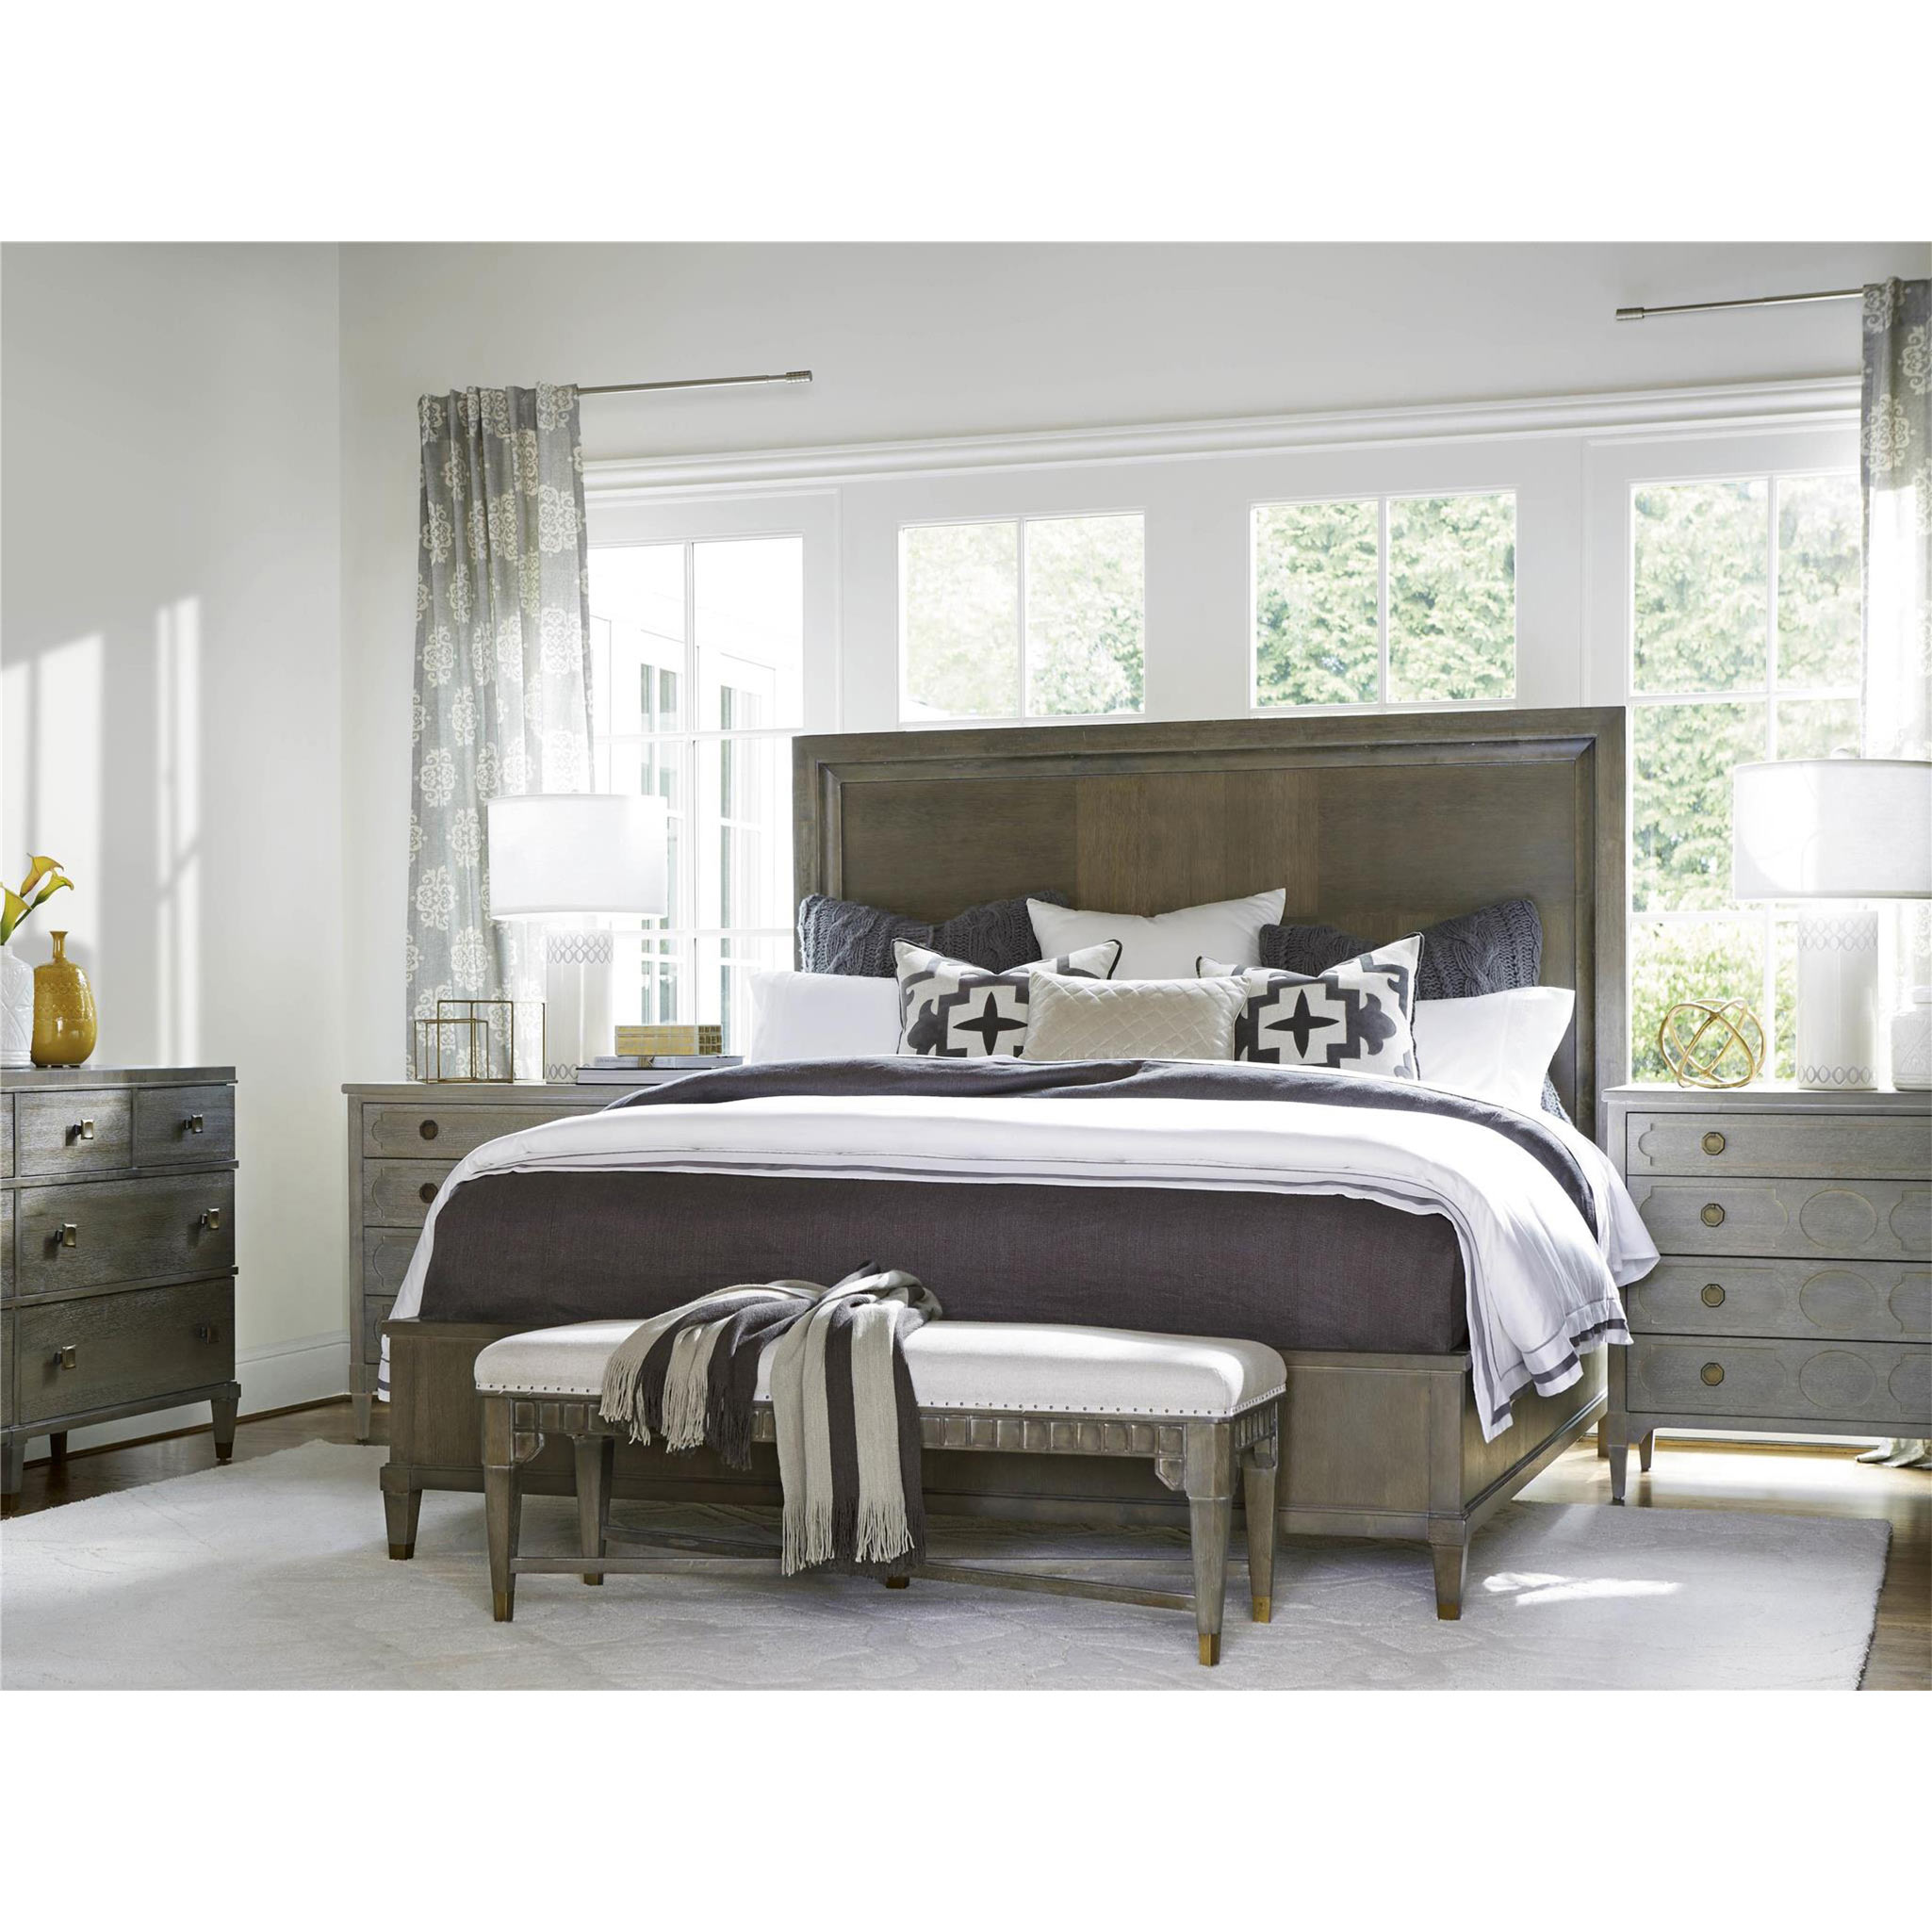 Sylvia French Country Grey 4 Drawers Dresser